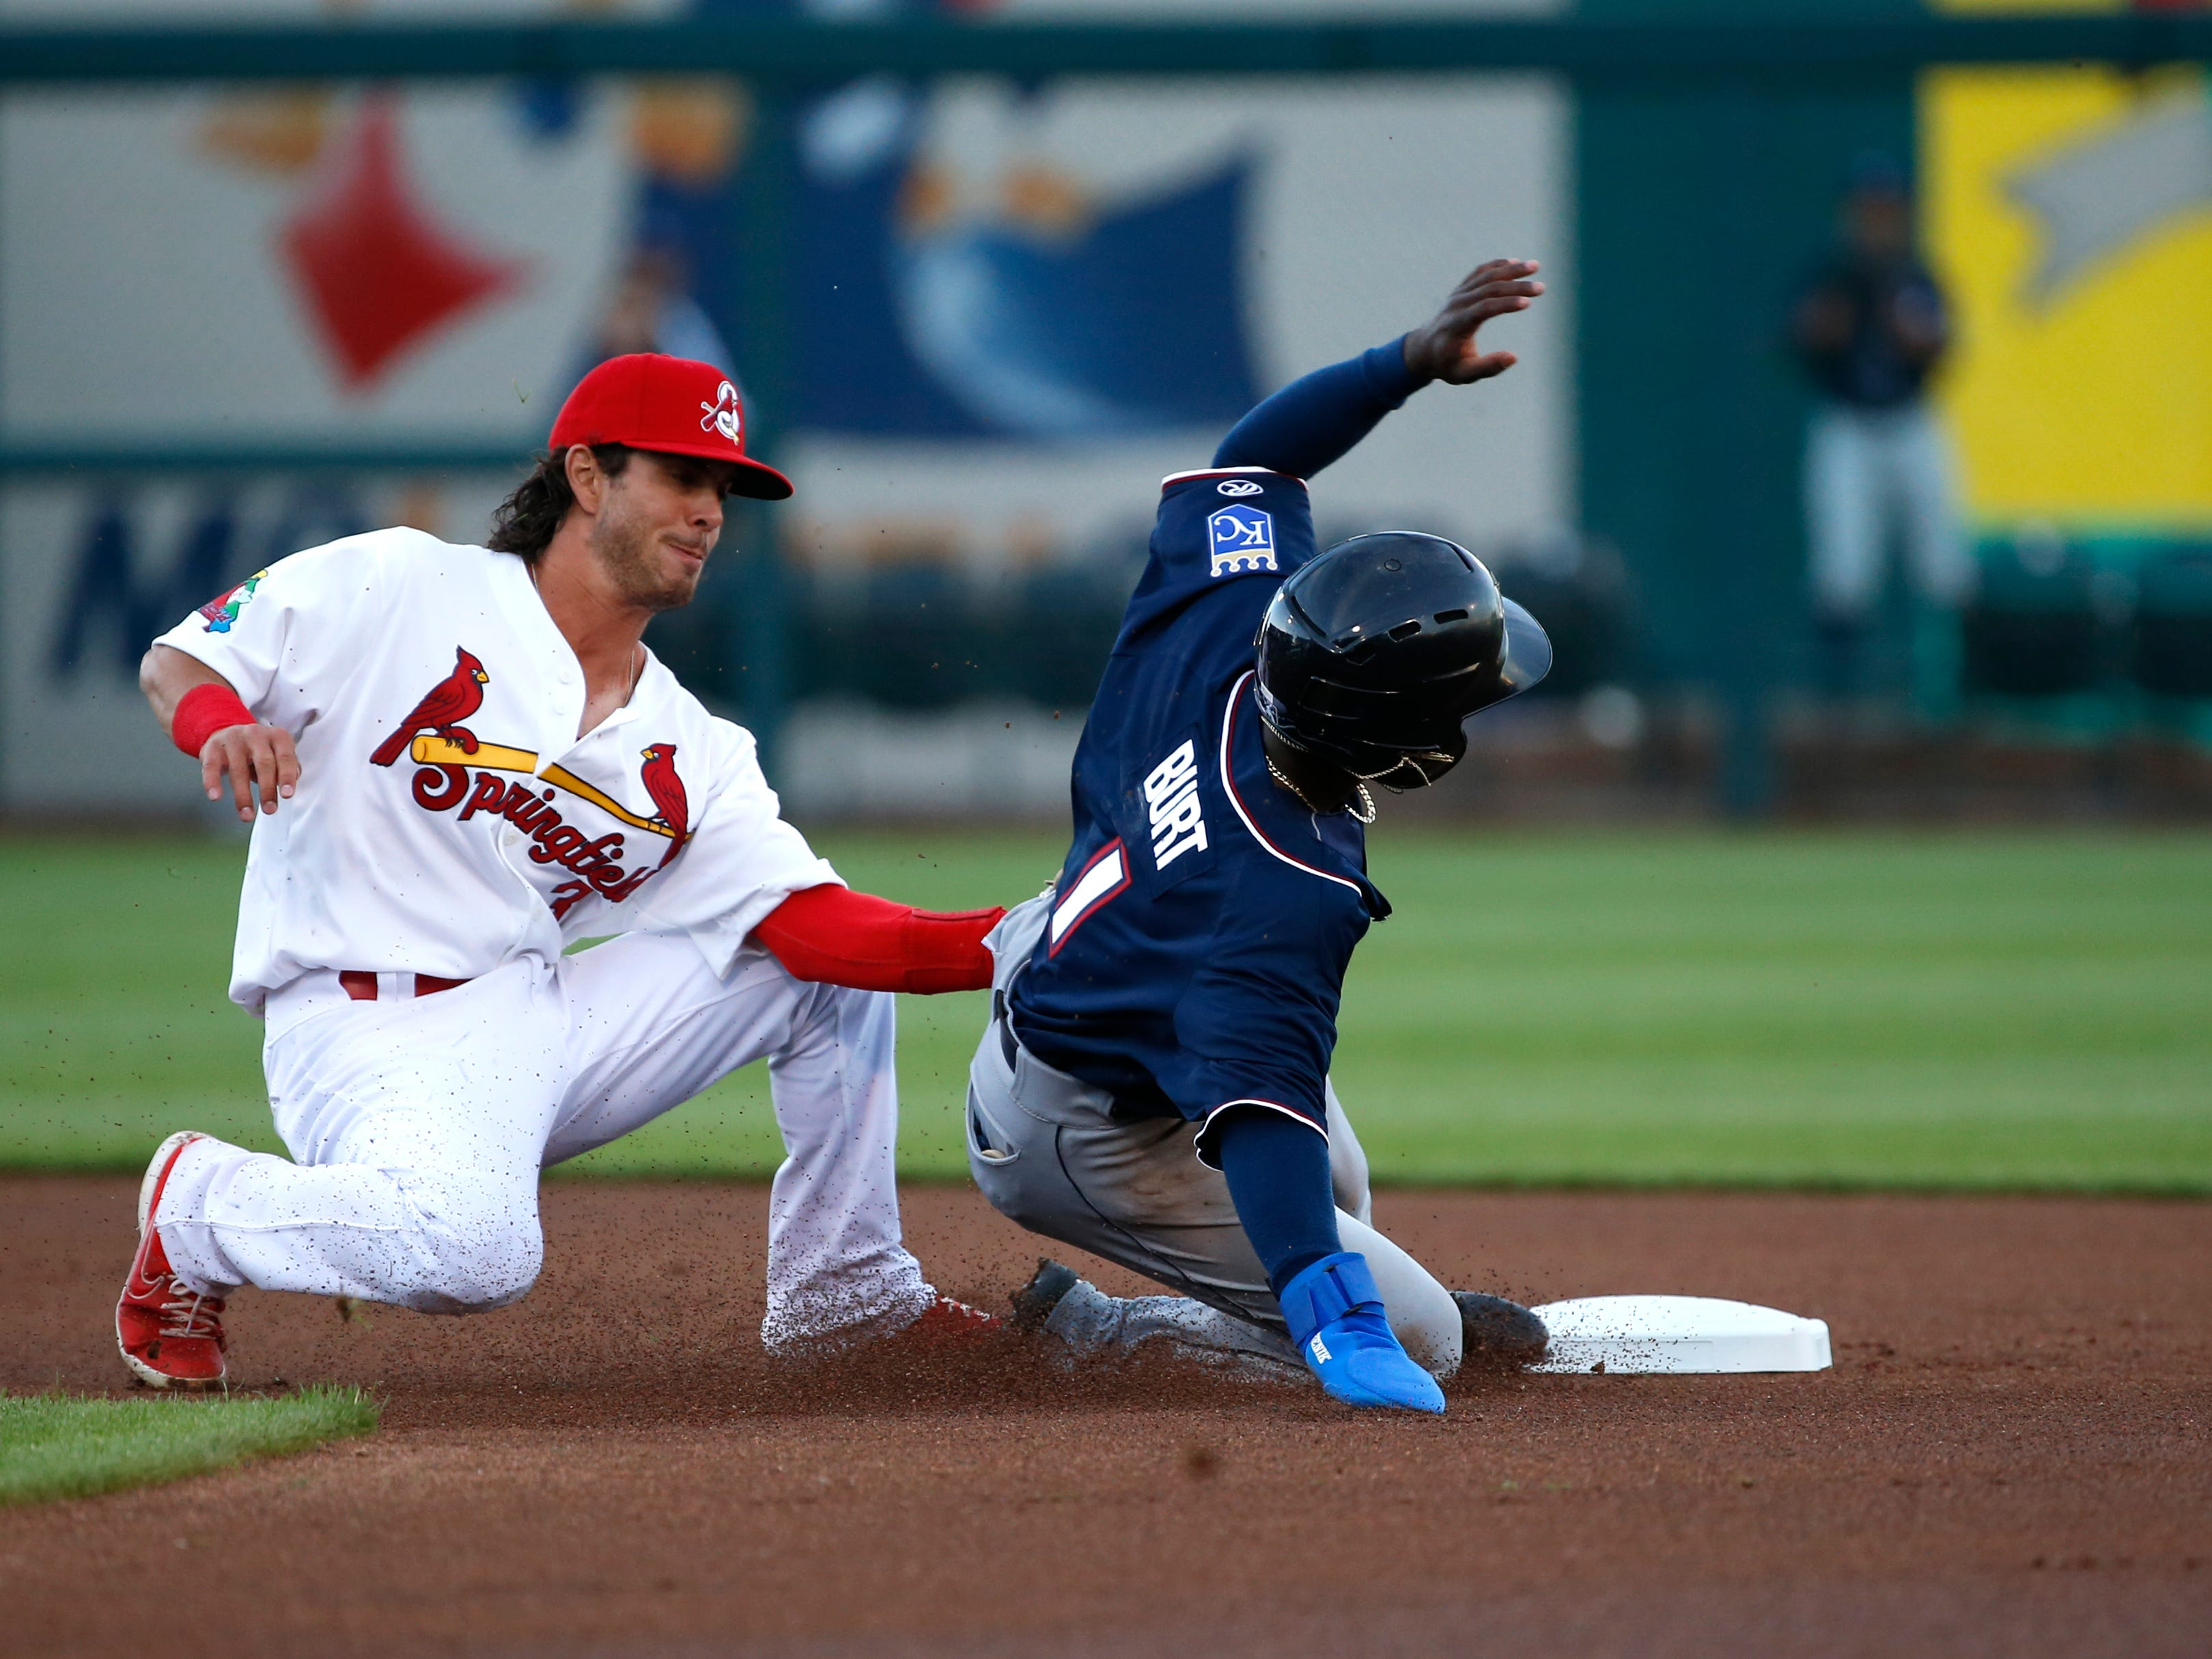 Springfield Cardinals shortstop Kramer Robertson tags out Northwest Arkansas Natural D.J. Burt while trying to steal second at Hammons Field on Thursday, April 11, 2019 during the Cardinals home opener.